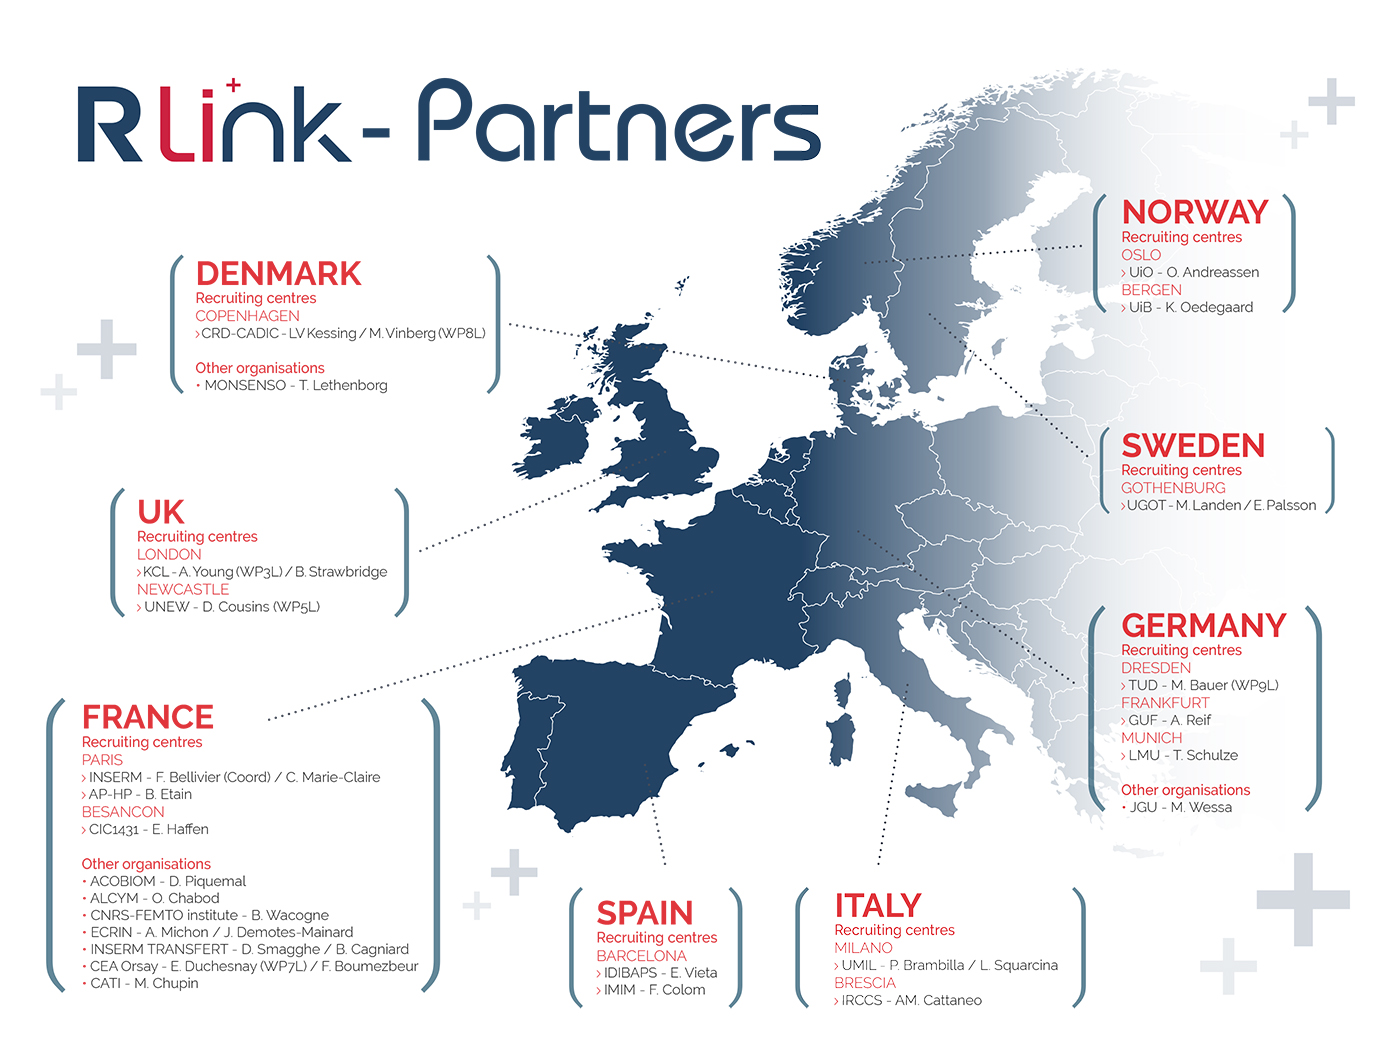 R-LiNK Partners